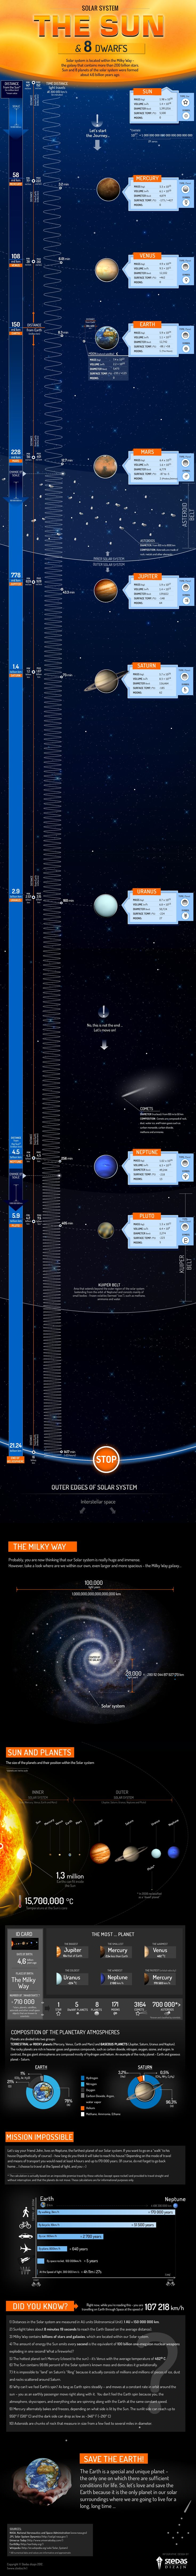 Solar System: The Sun and 8 Planets. Beautiful infographic.